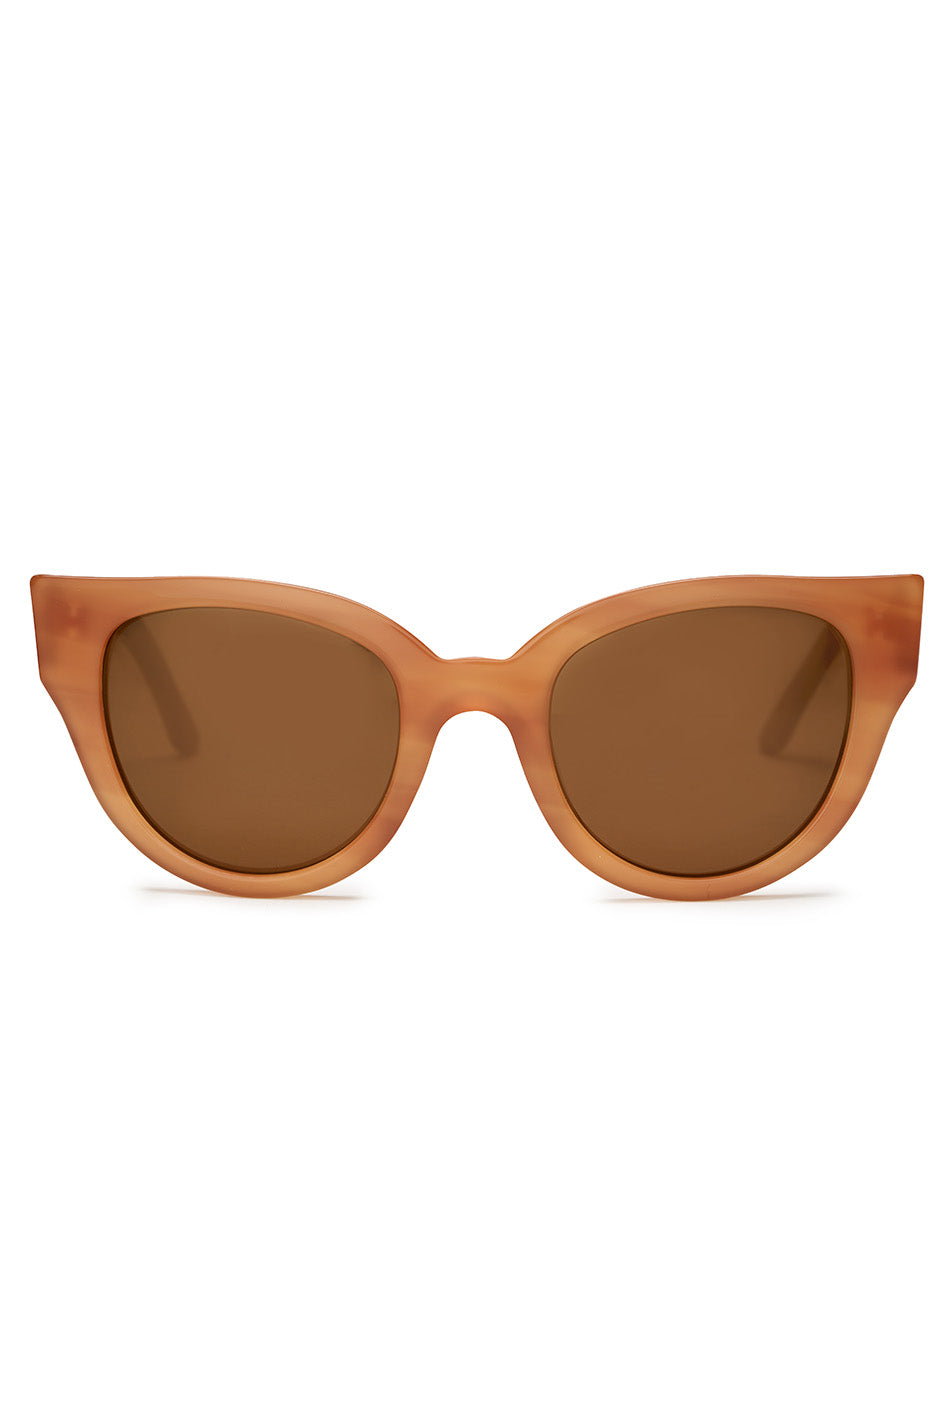 CARLA COLOUR - BARTON sunglasses, cedar